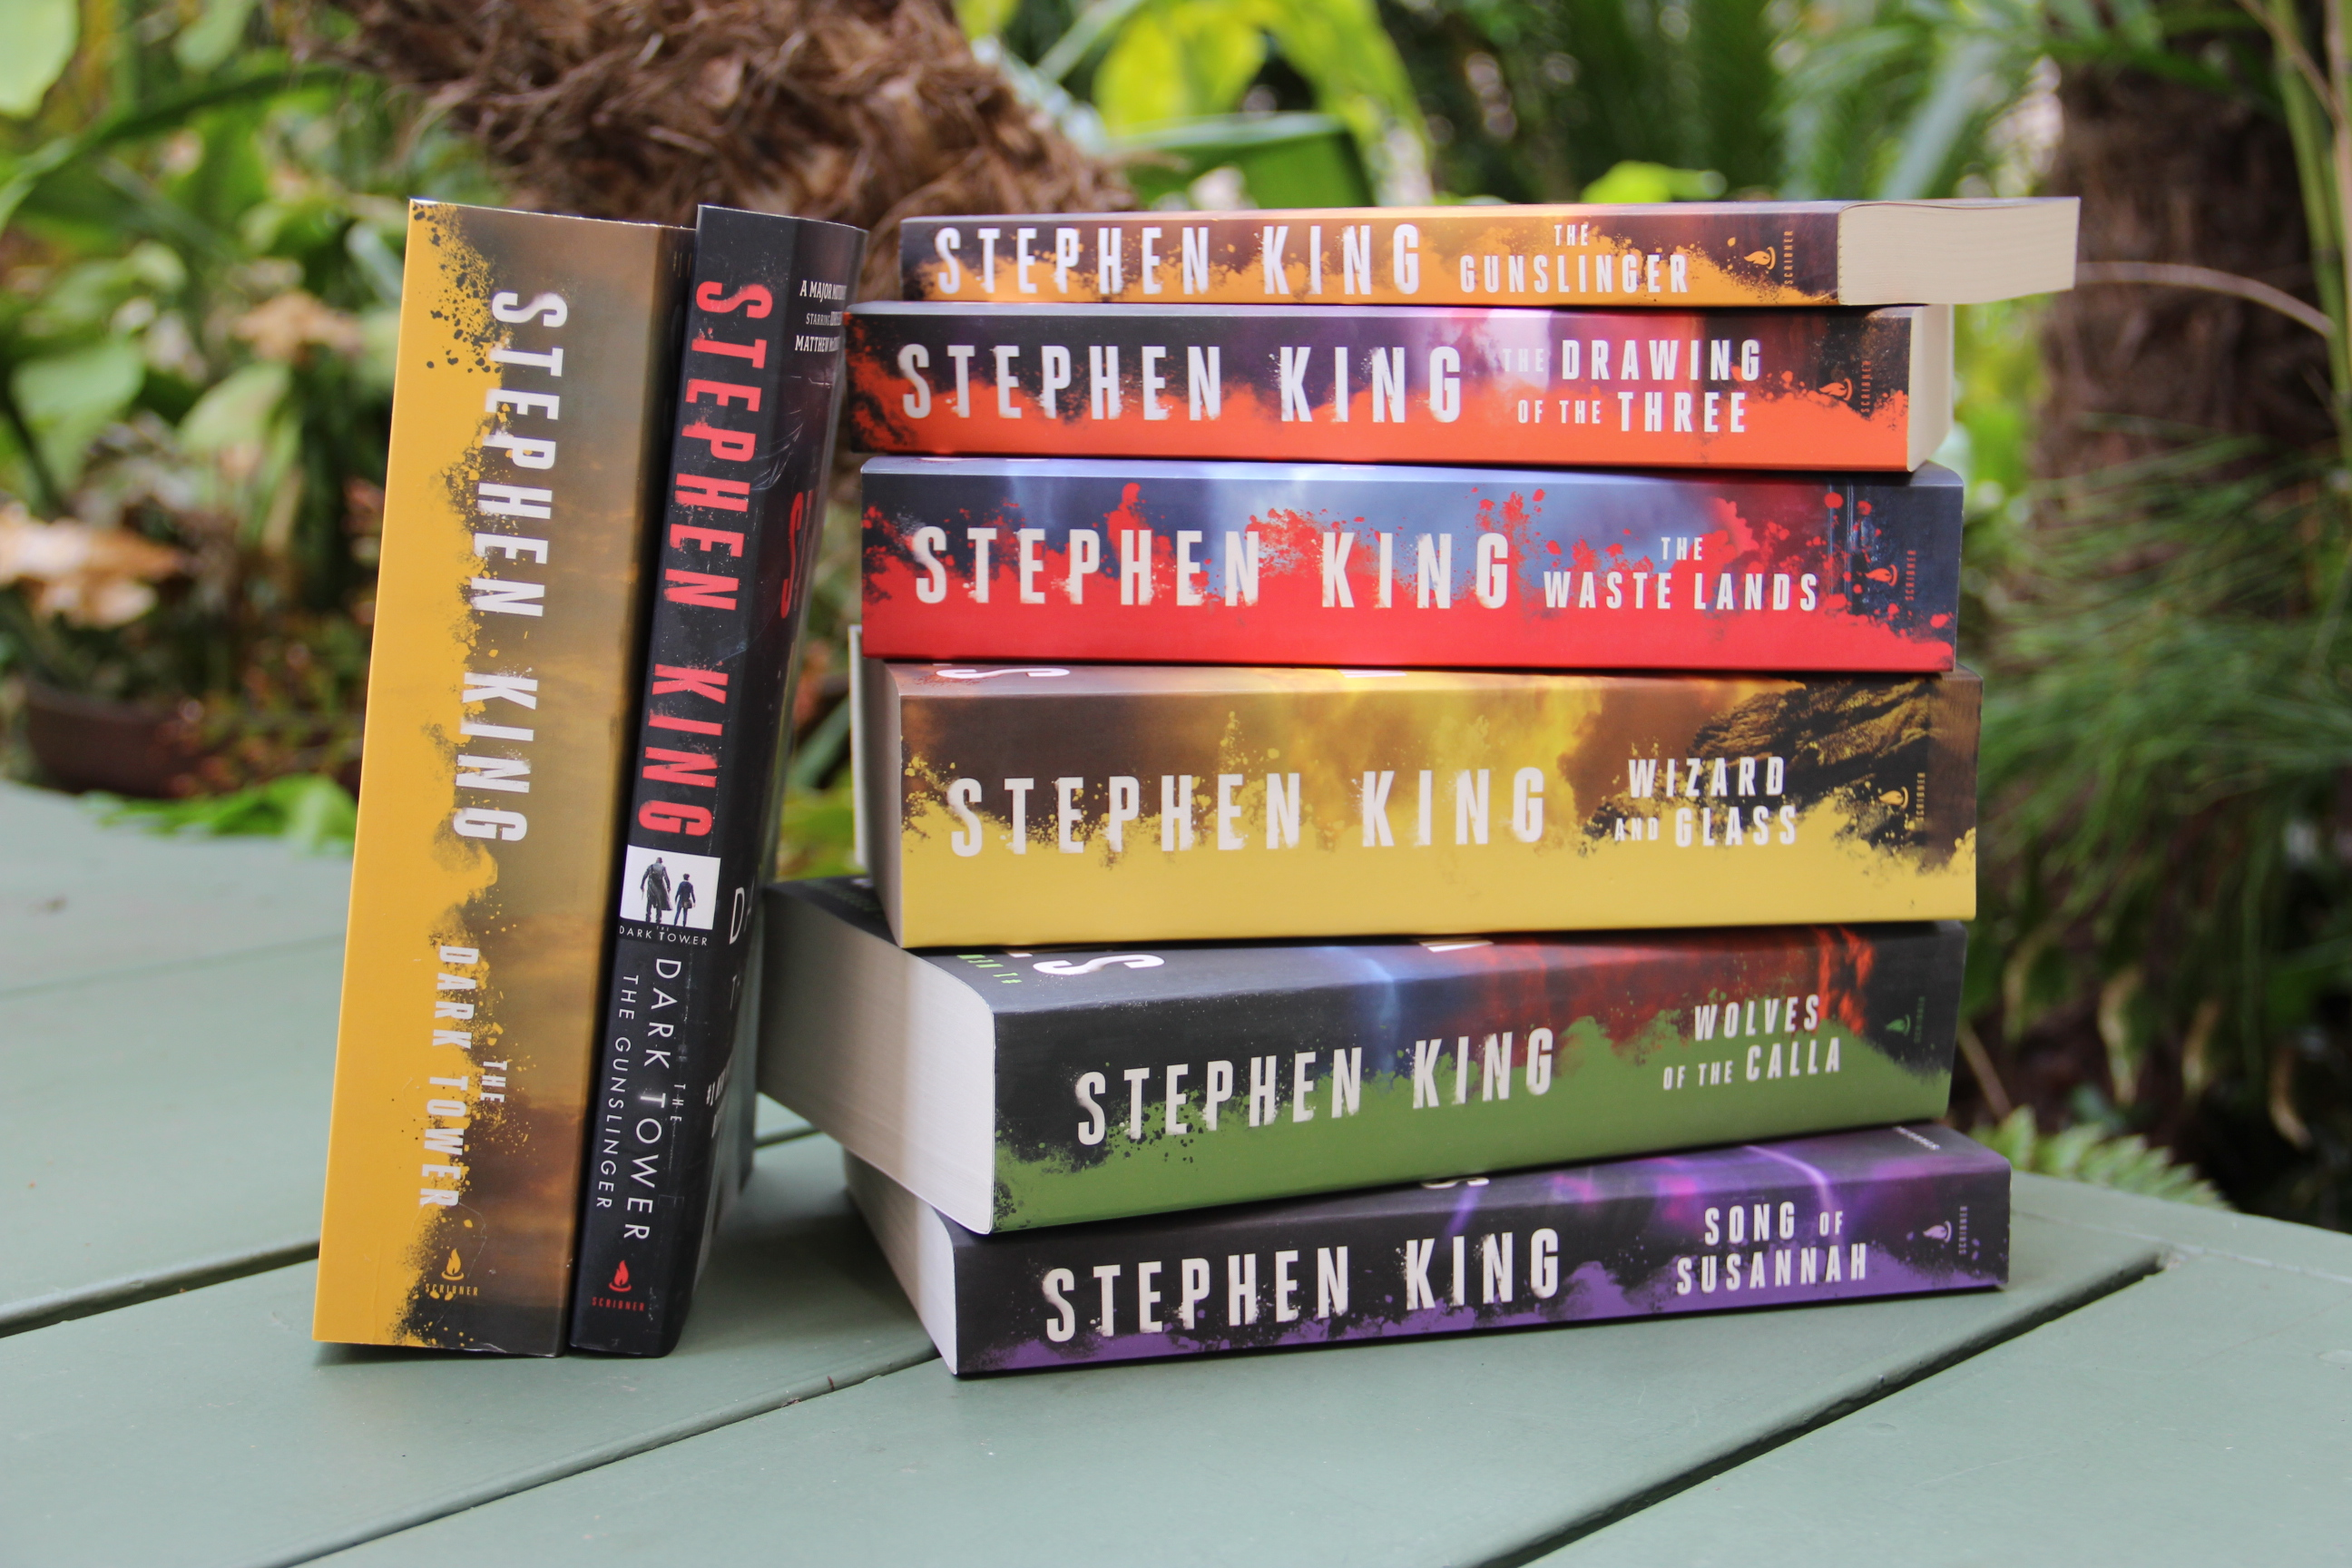 stephen king, dark tower book series